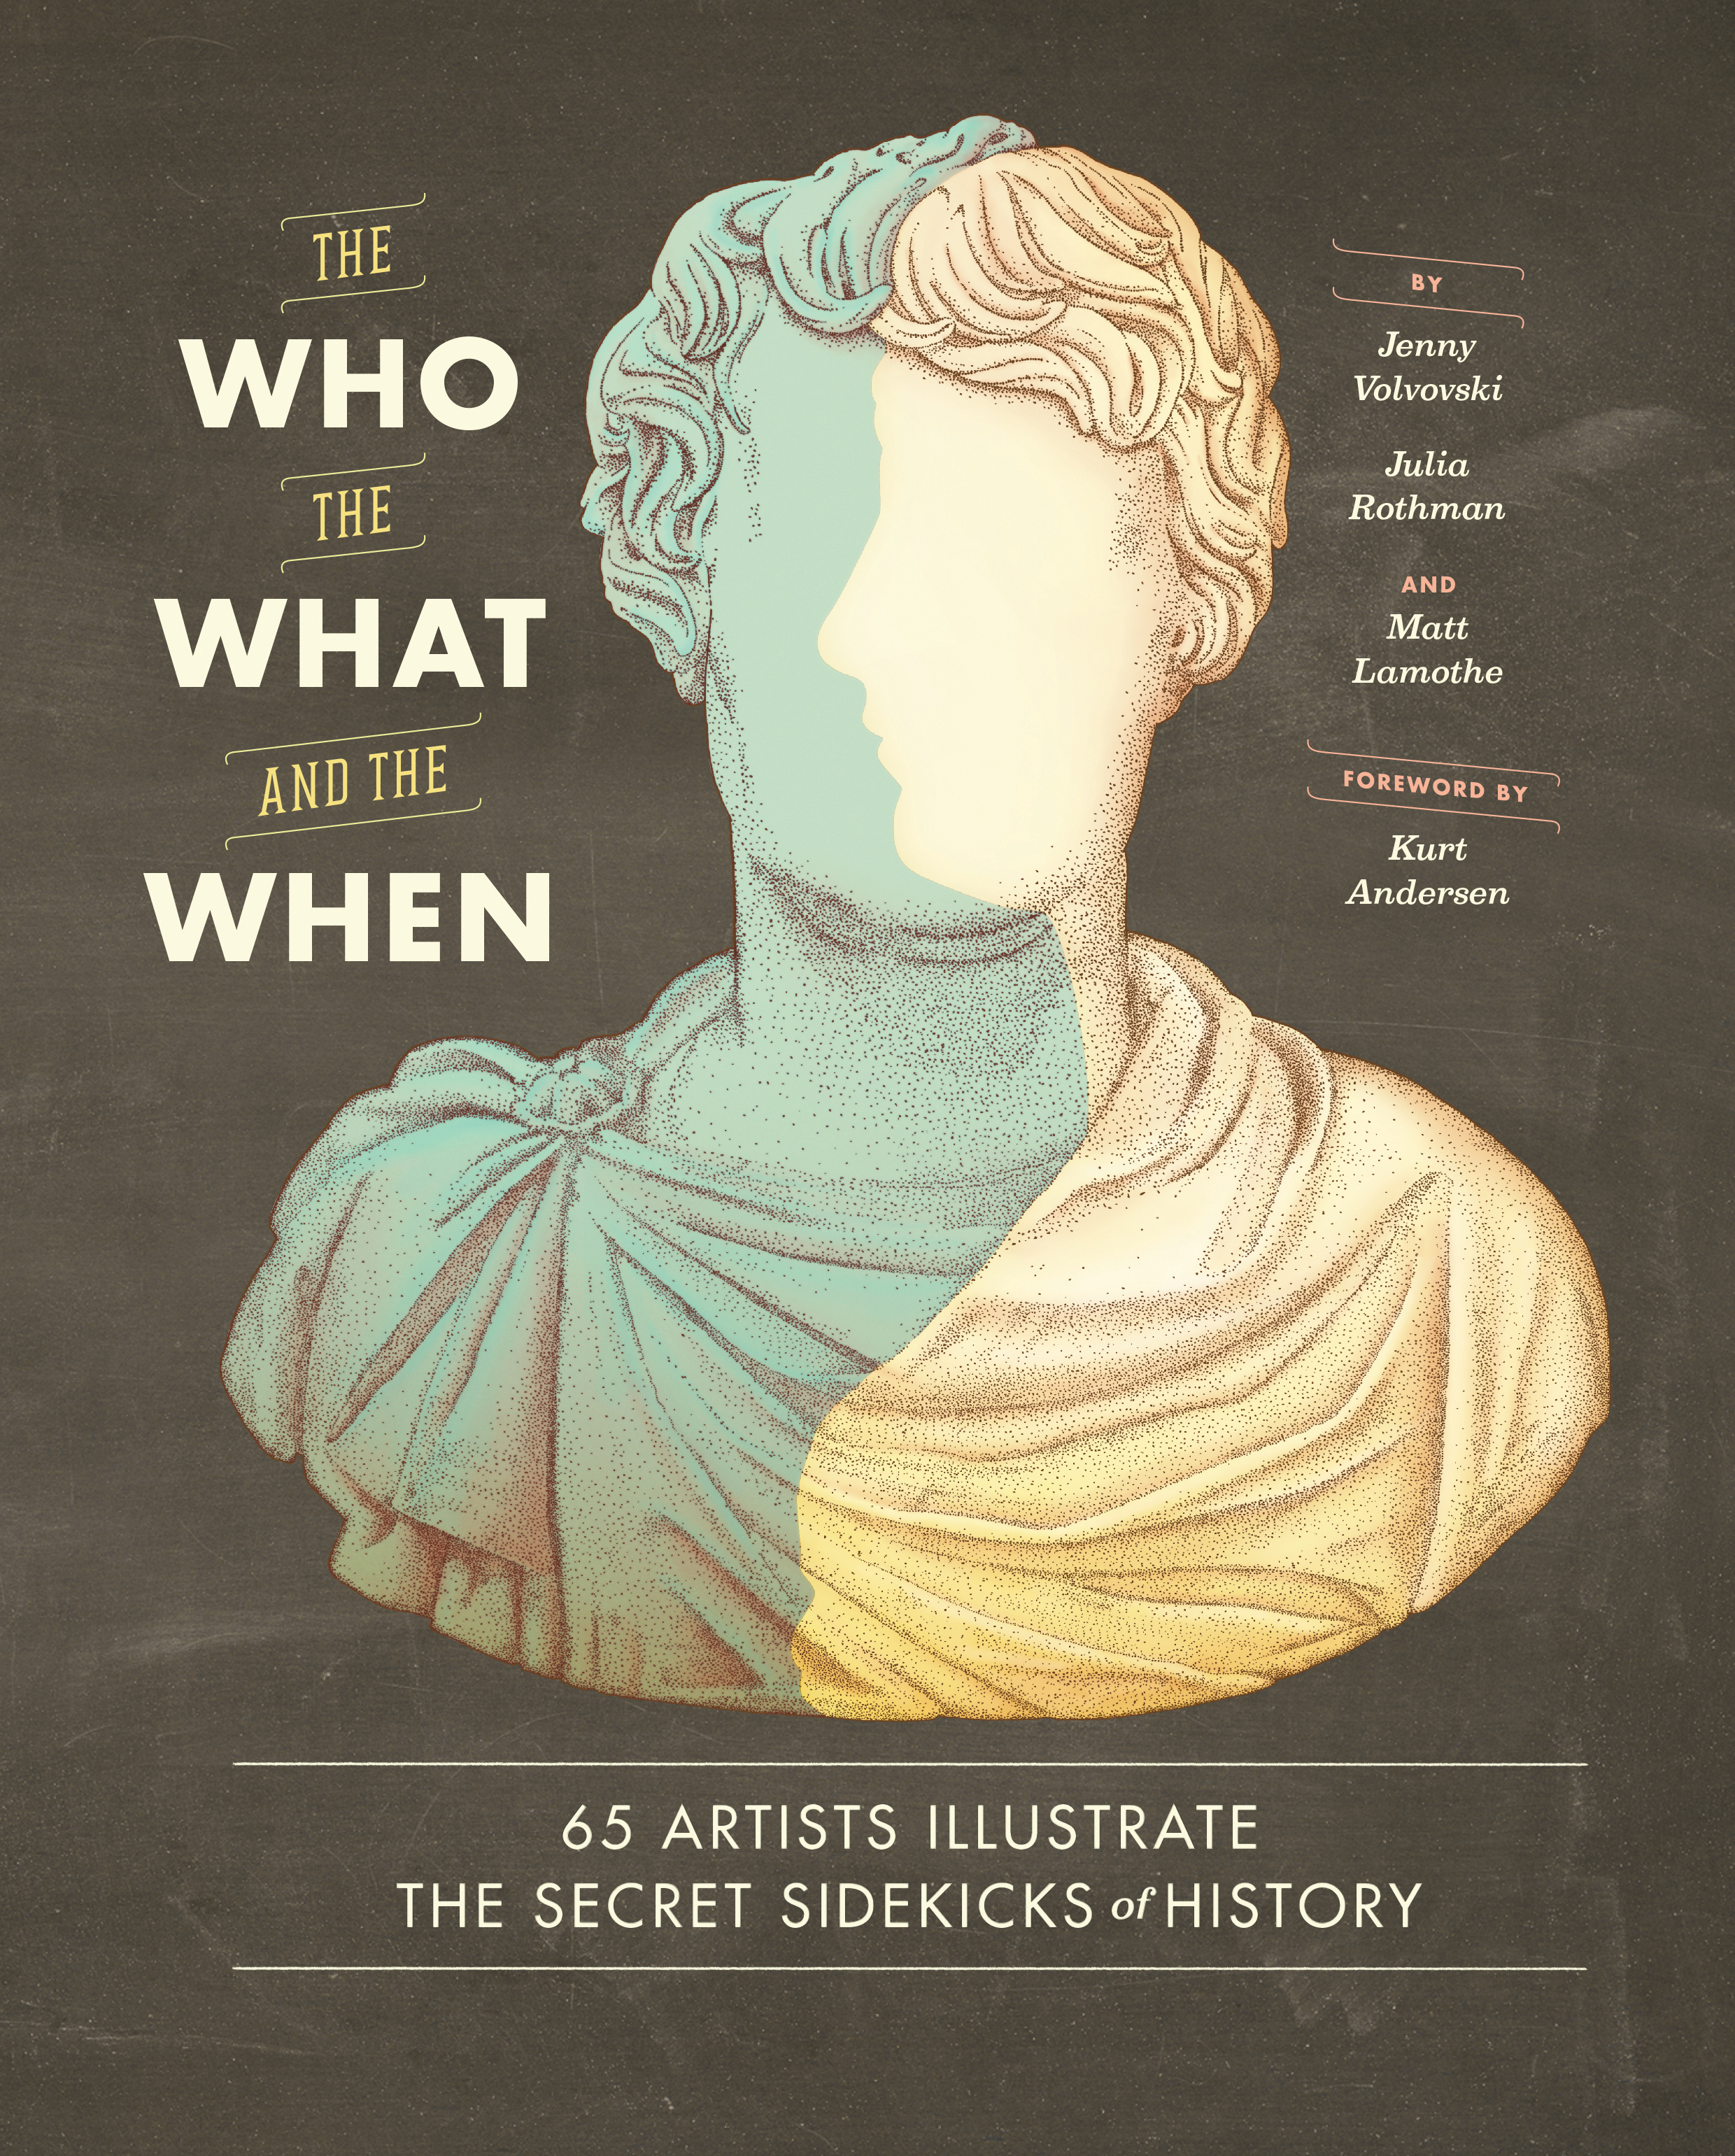 Book Launch: The Who, the What, and the When by Jenny Volvovski, Julia Rothman, and Matt Lamothe